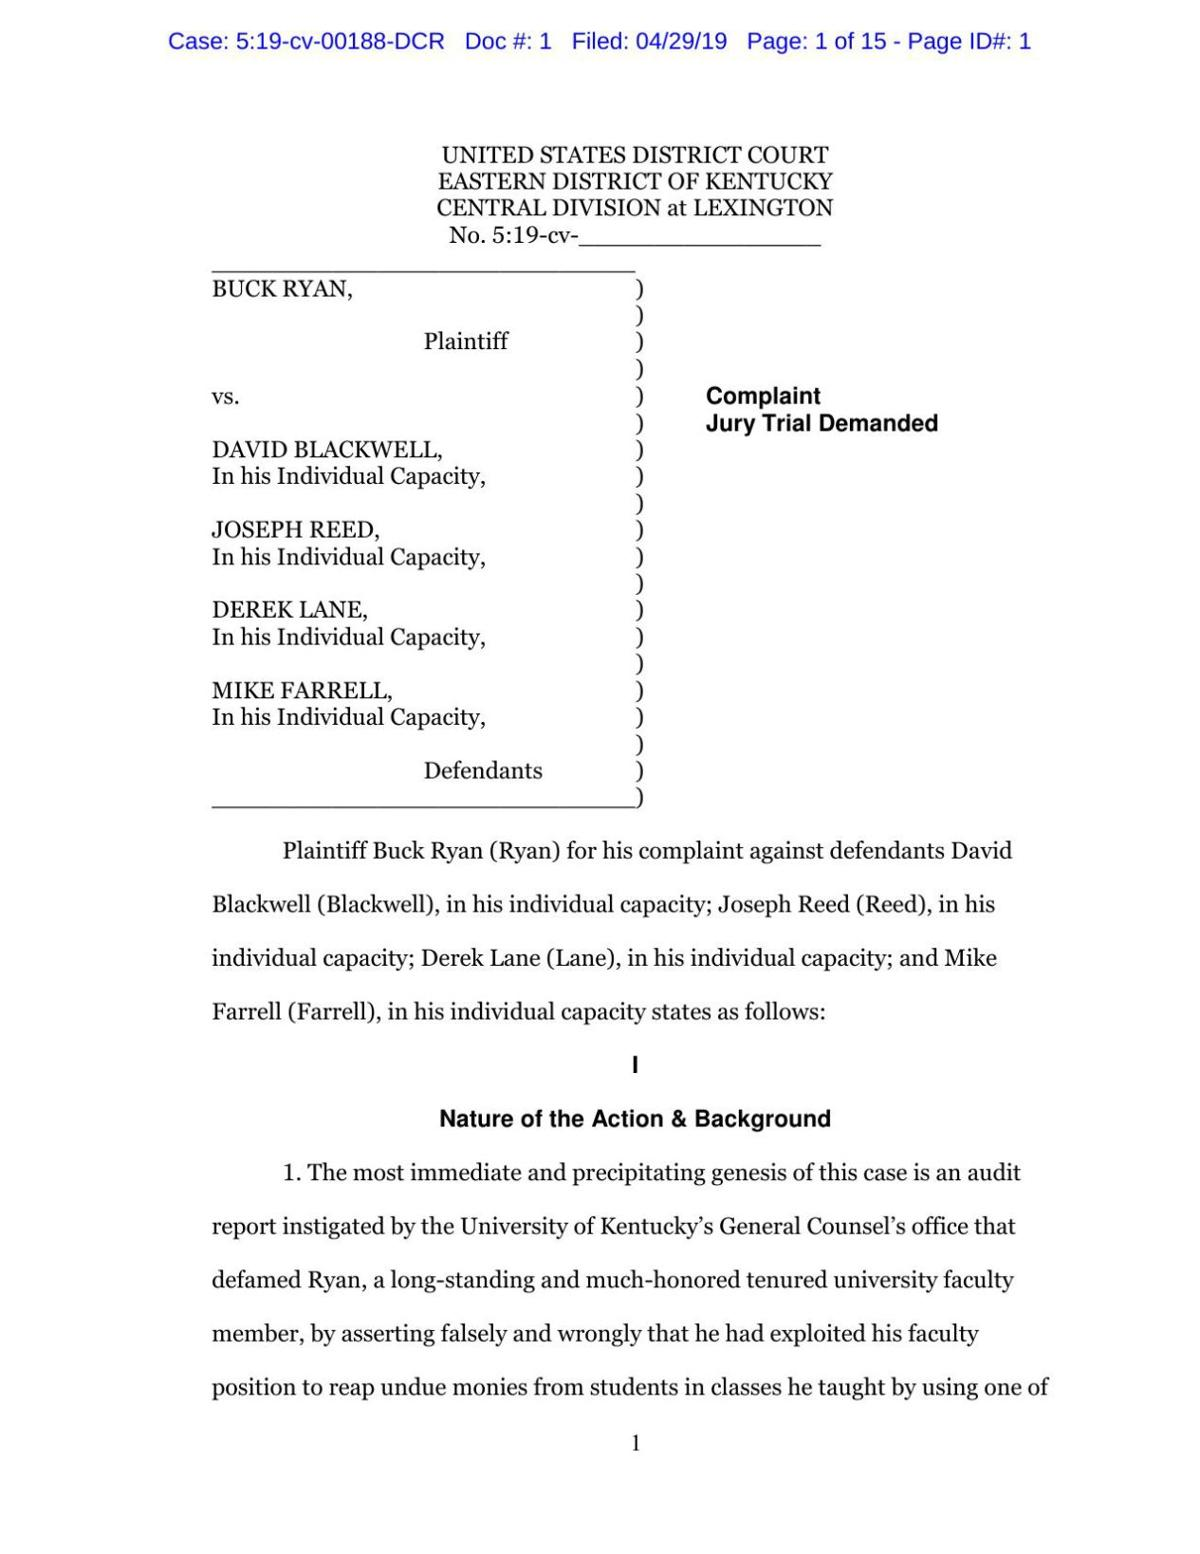 Buck Ryan Lawsuit